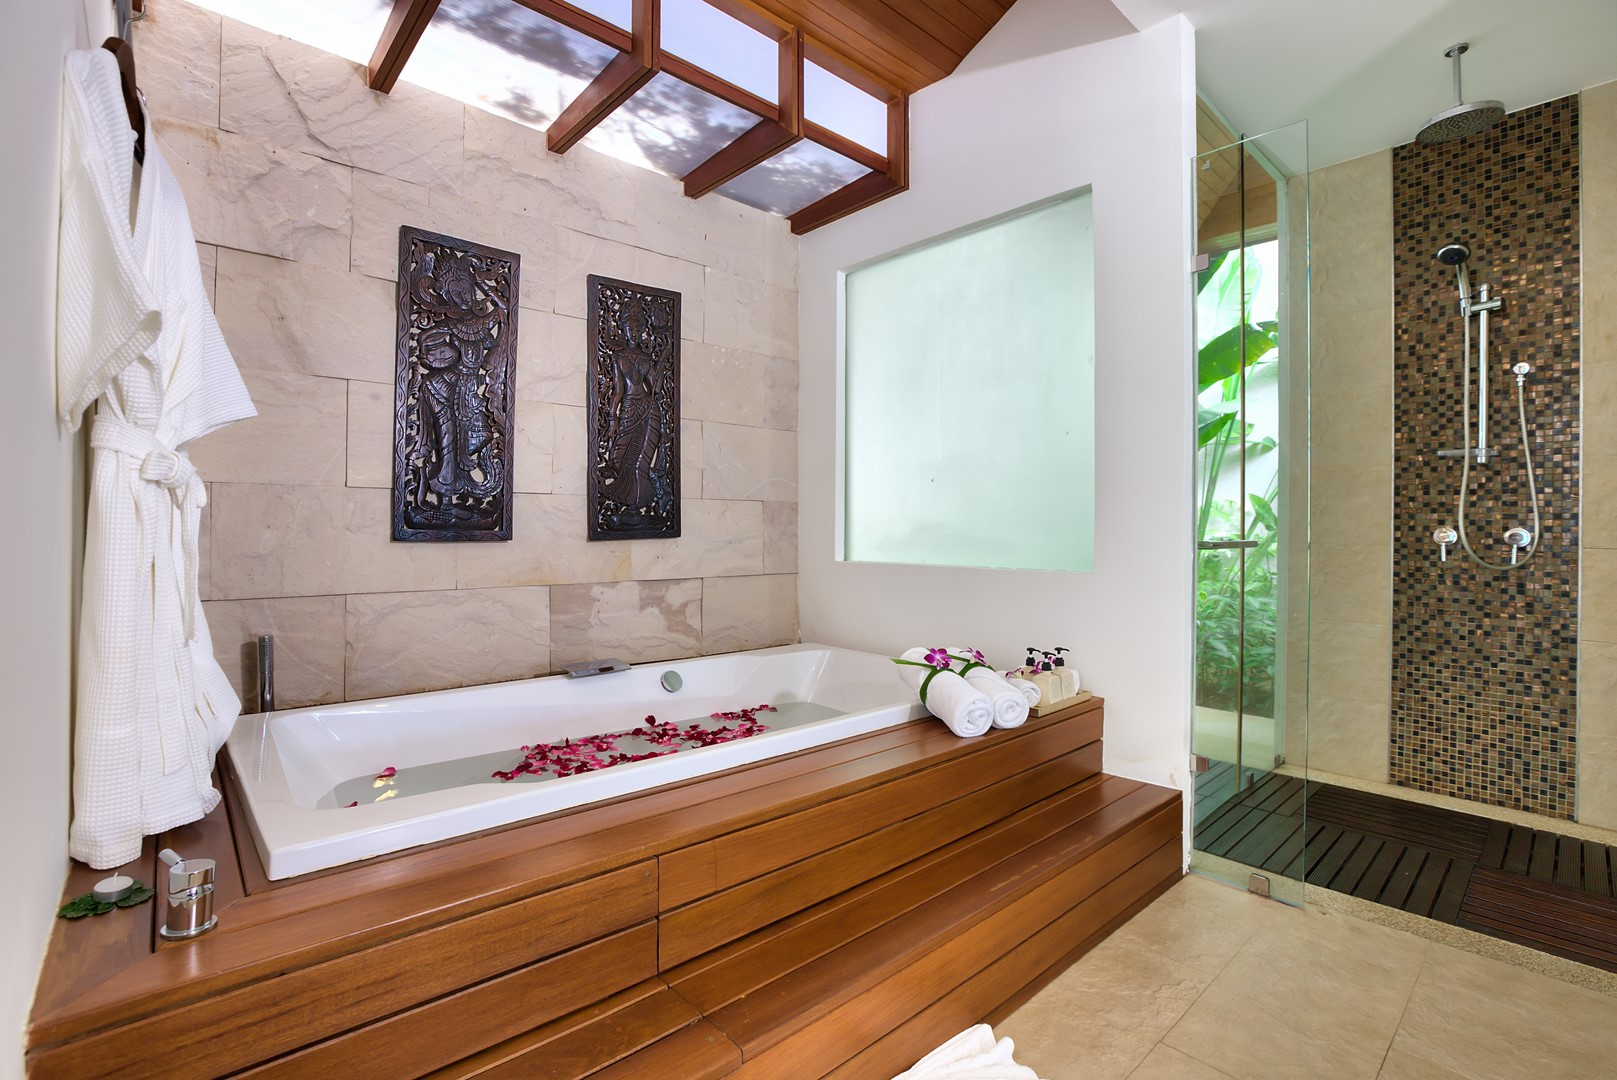 Baan Benjamart Bathtub with Wooden Deck | Bophut, Koh Samui